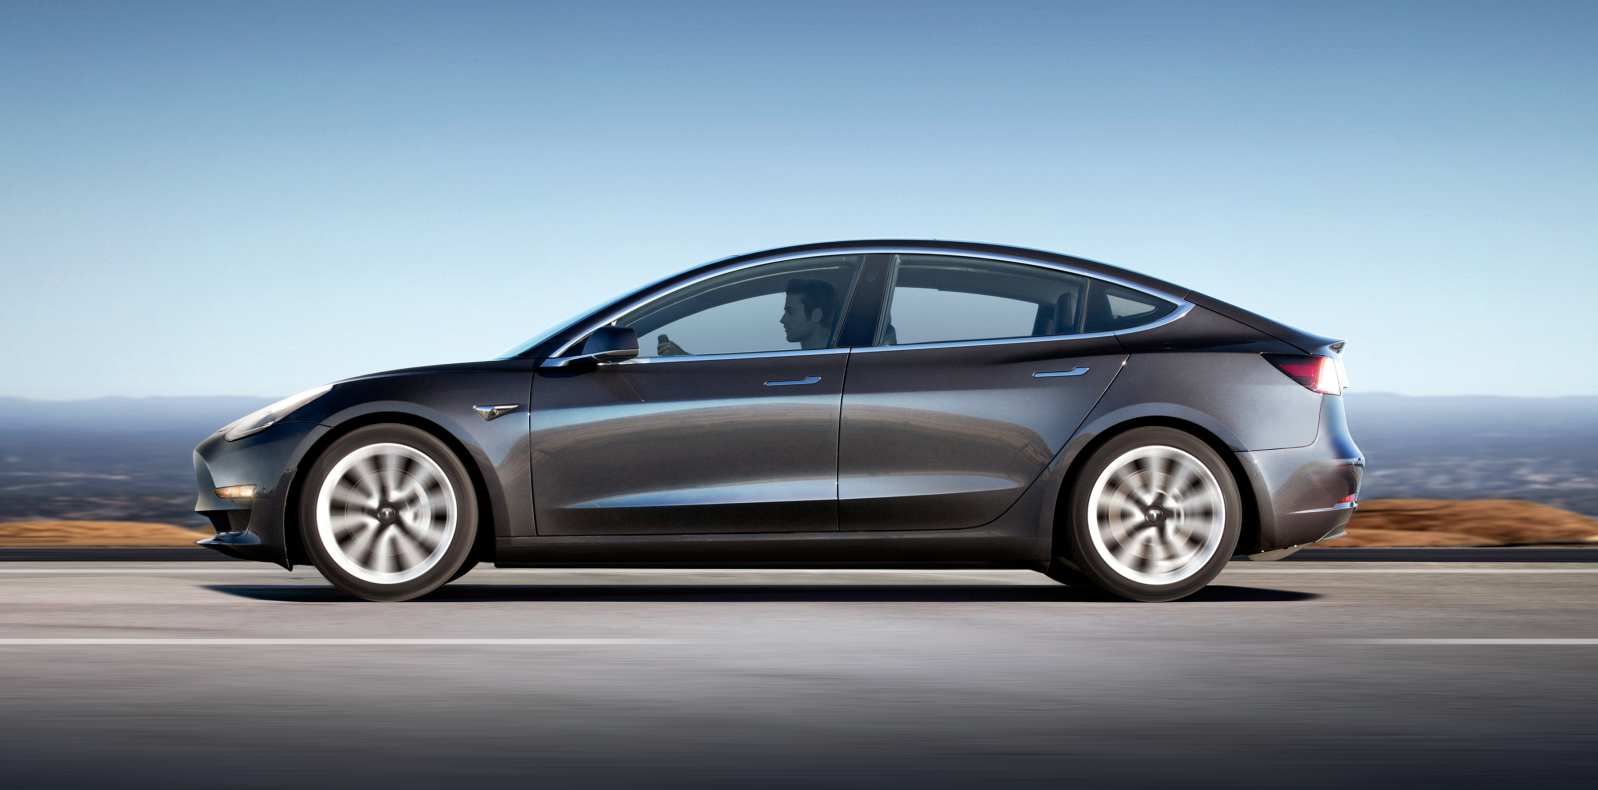 Tesla Model 3 Battery Packs Have Capacities Of 50 Kwh And 75 Says Elon Musk